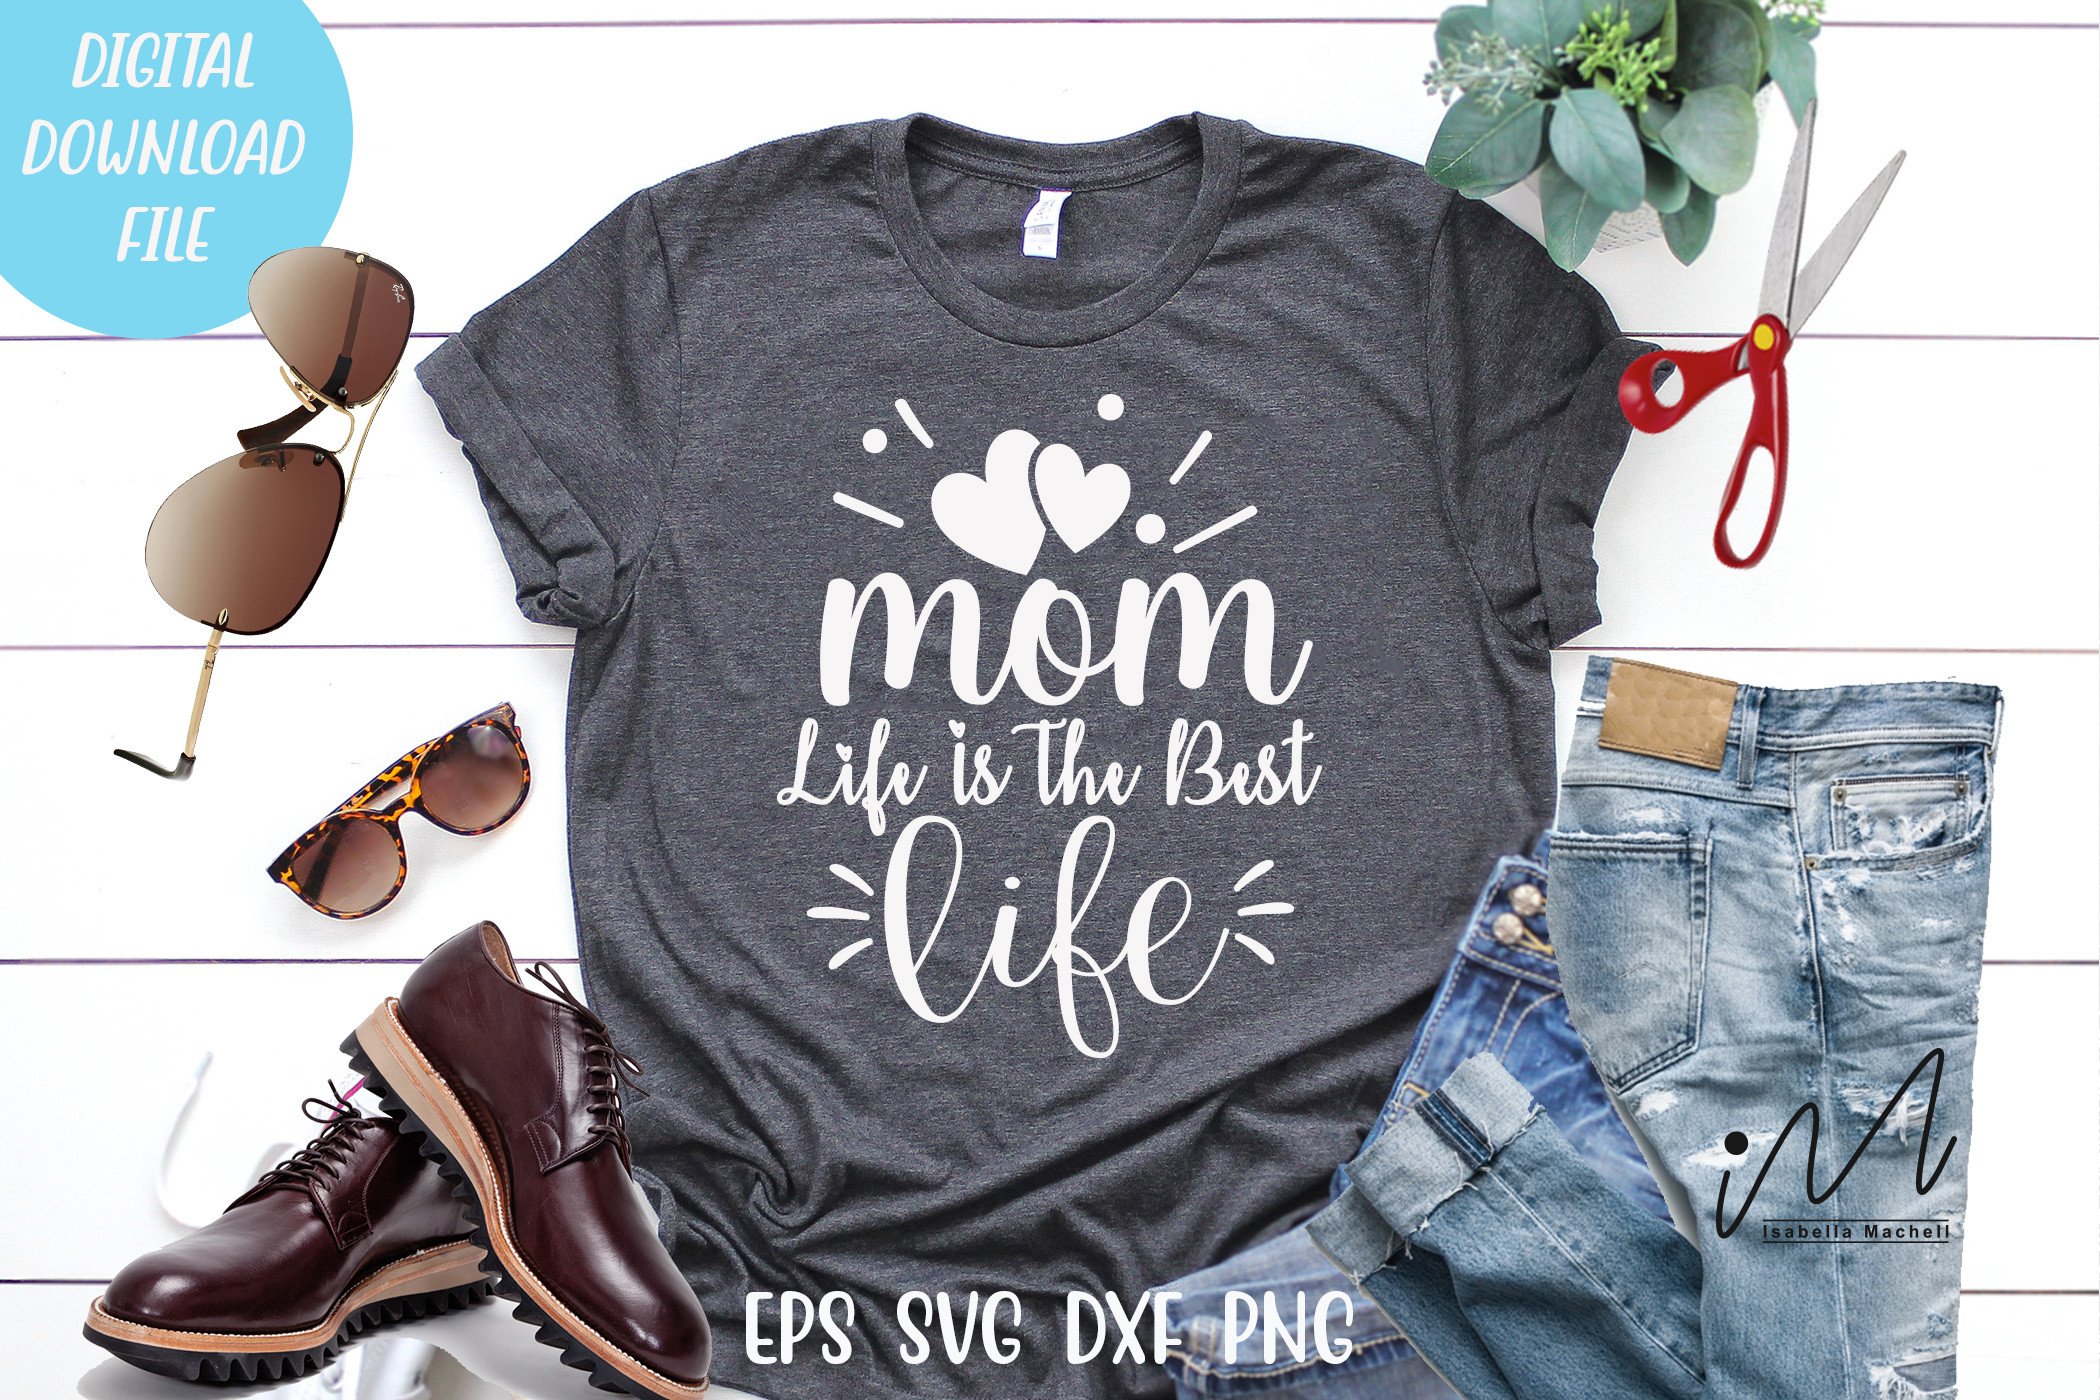 Mom Life is the Best Life SVG SVG File